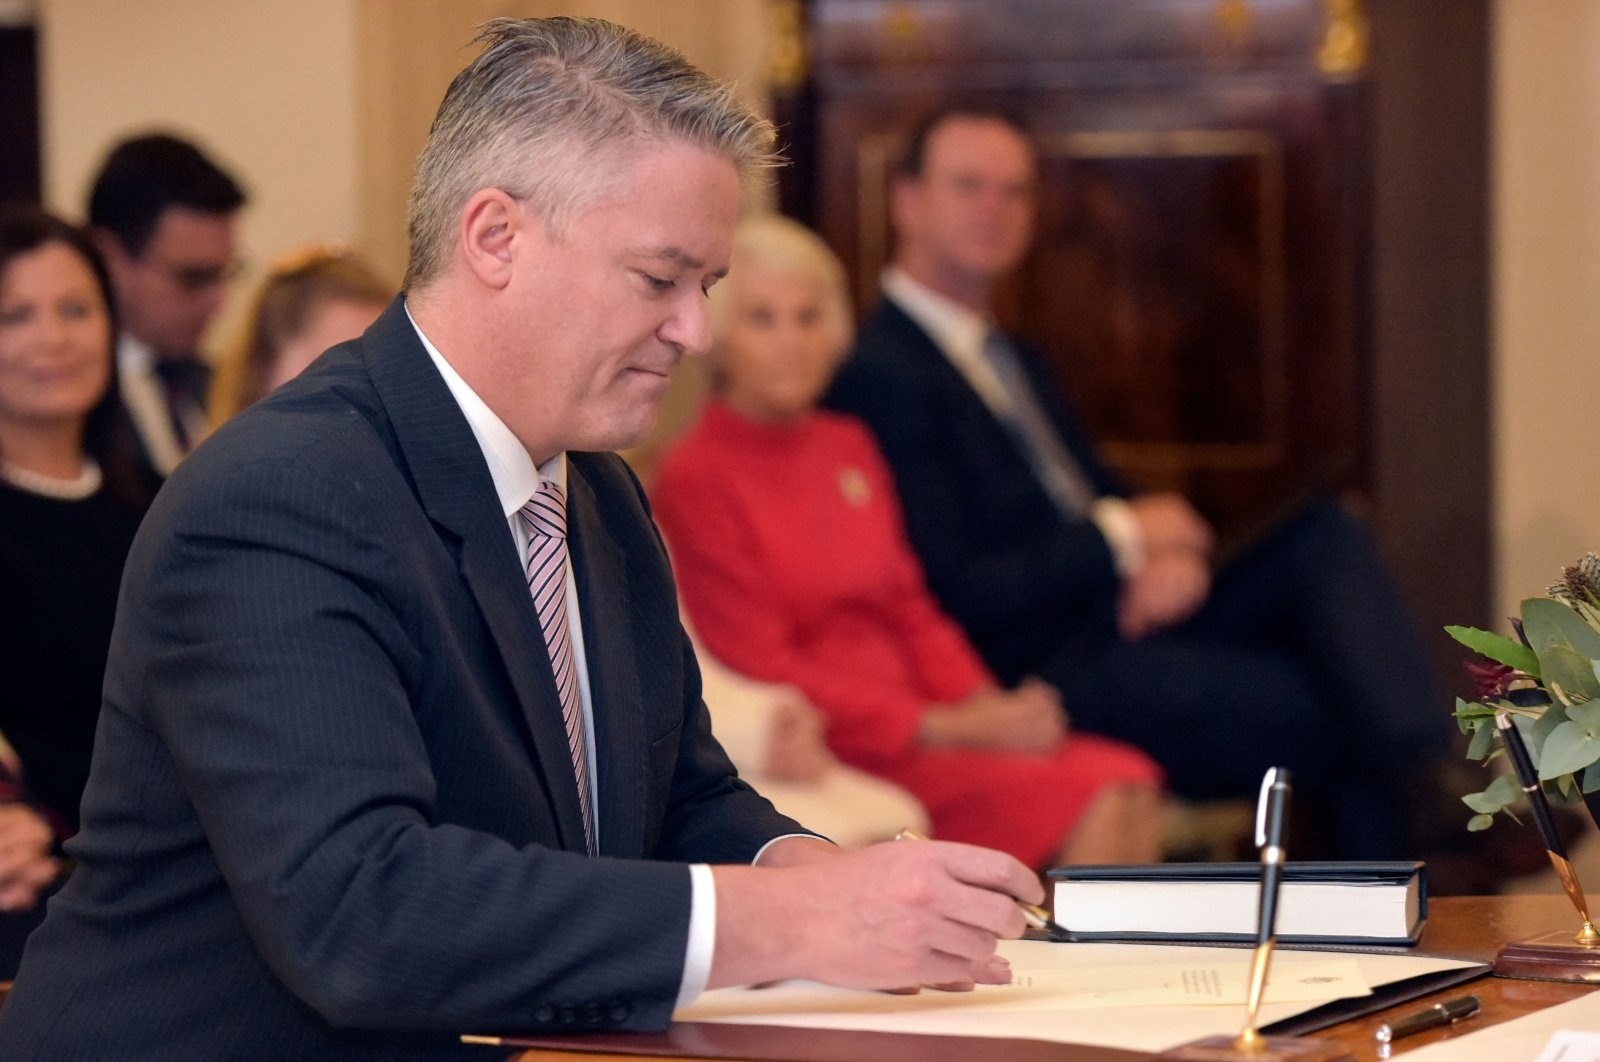 Mathias Cormann signs a document during an oath-taking ceremony at the Government House in Canberra on May 29, 2019. (AFP File Photo)